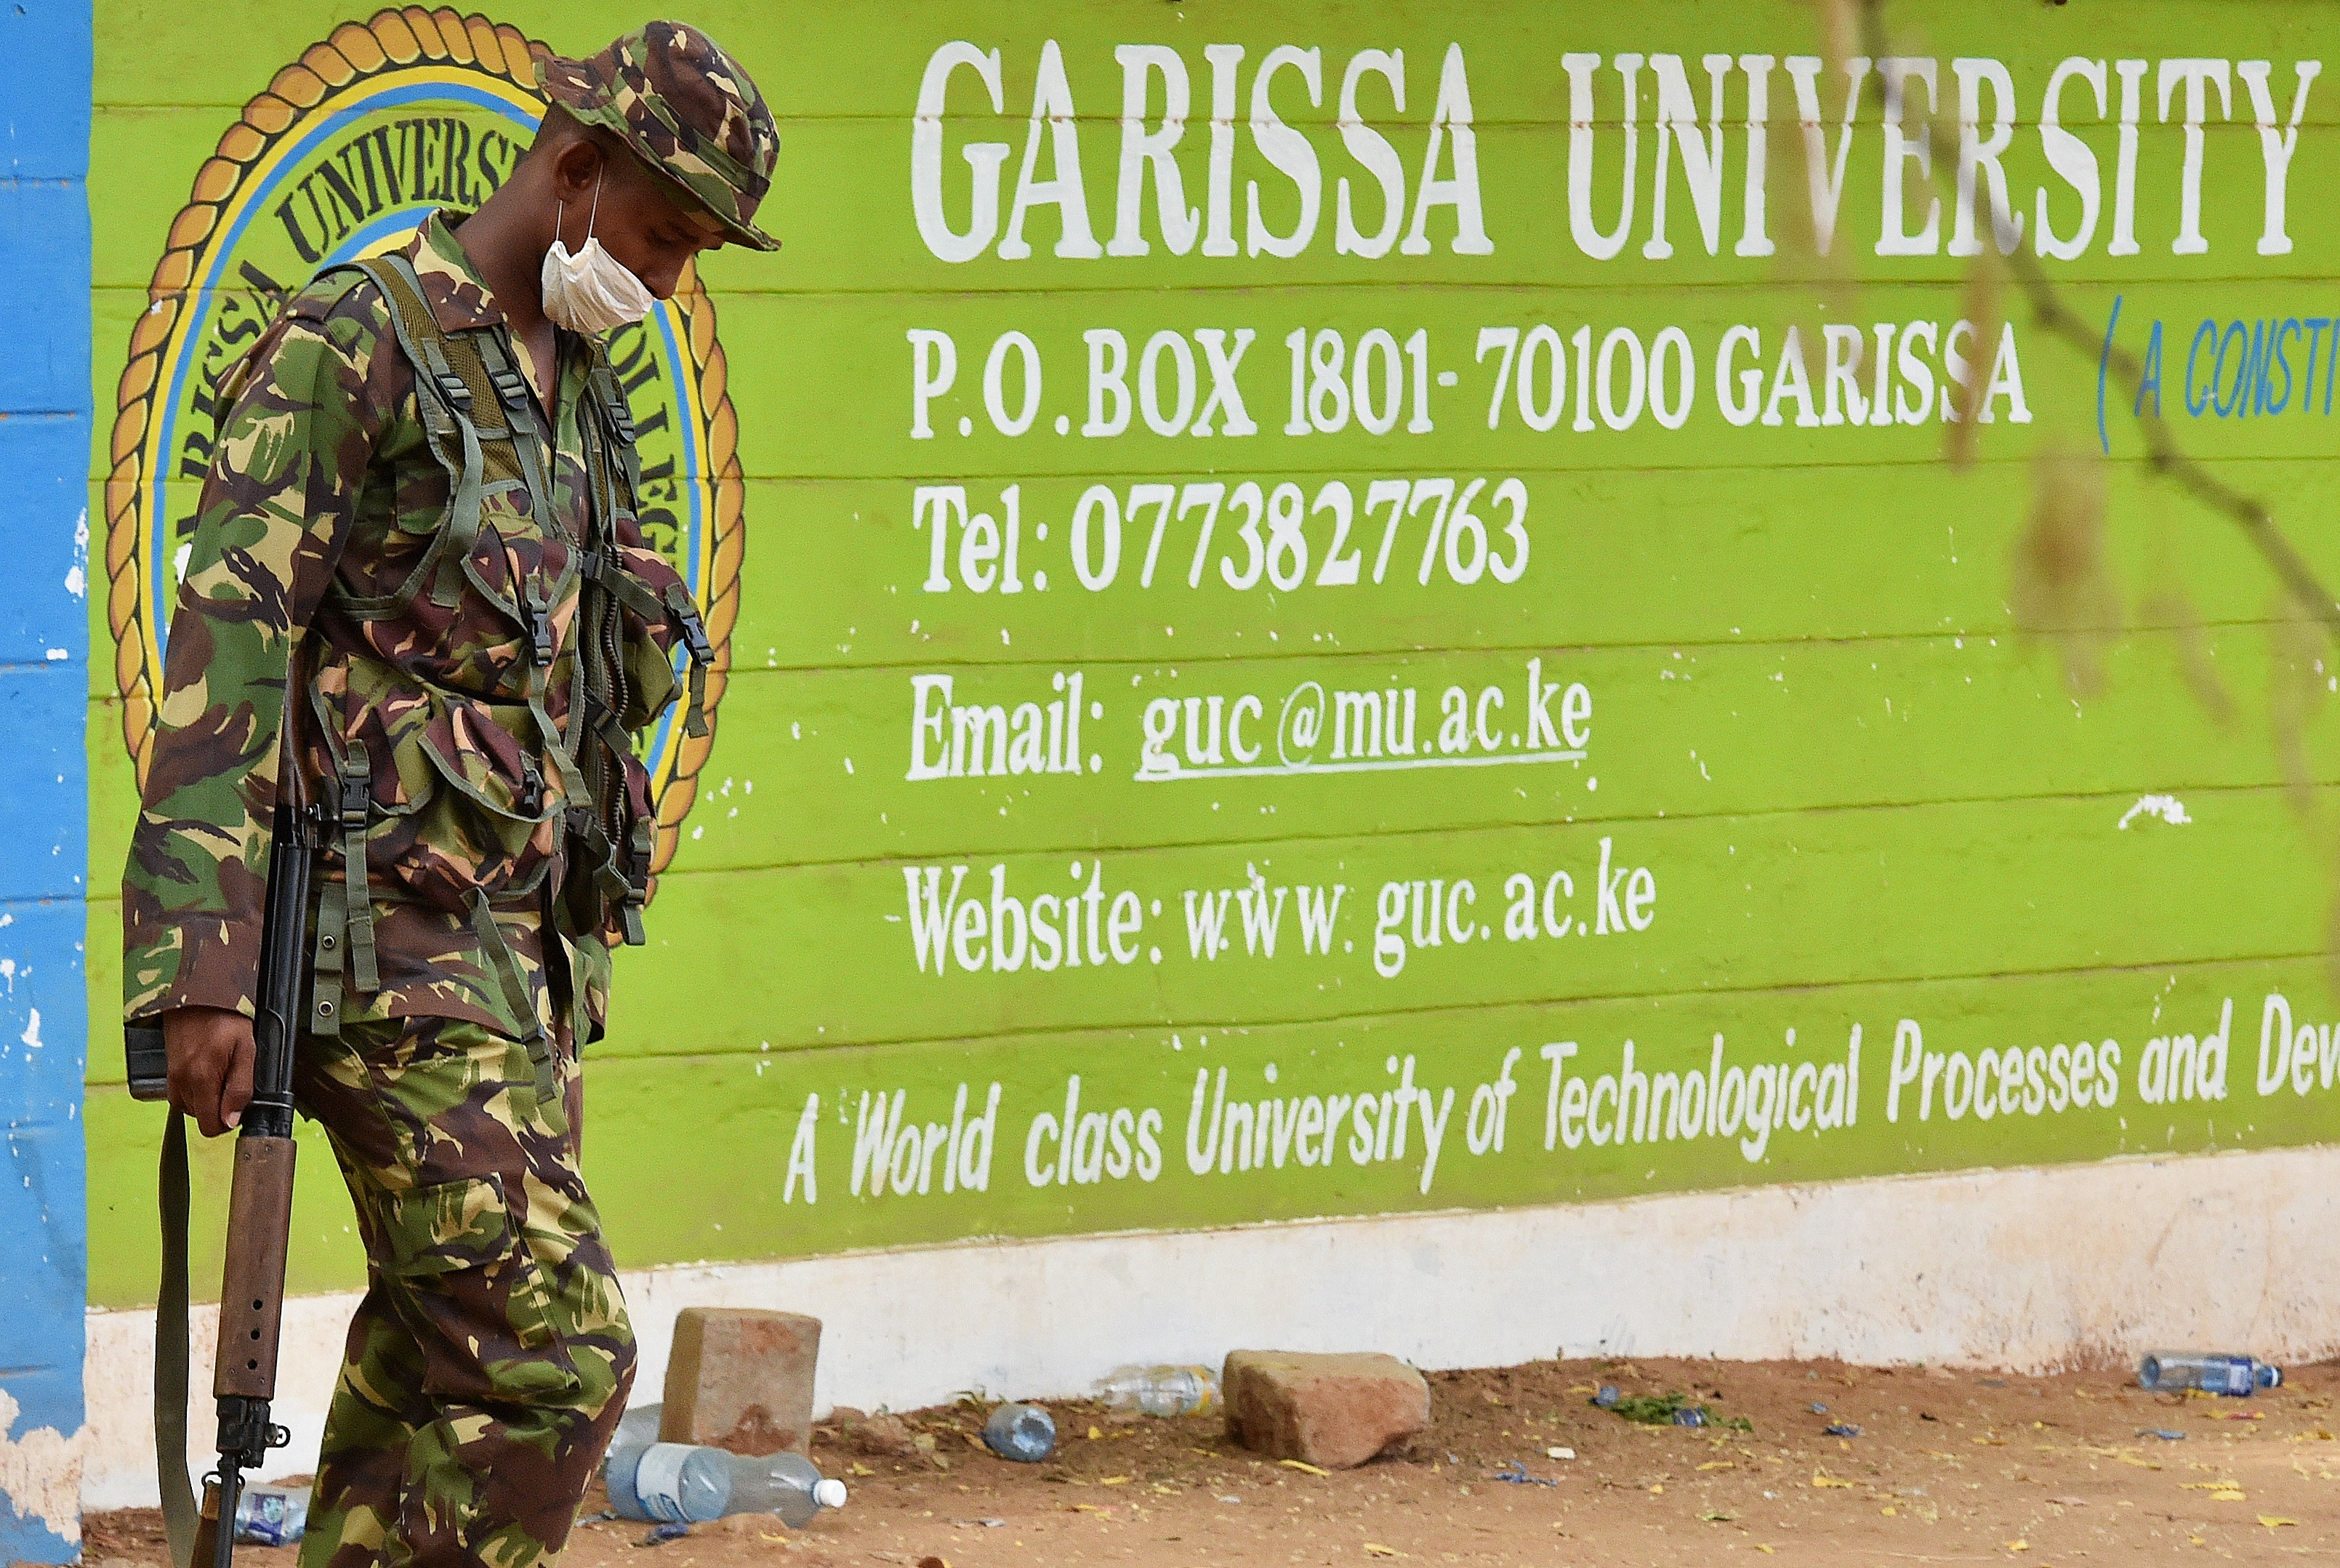 A Kenya Defence forces soldier walks past the front entrance of Moi University Garissa on April 3, 2015.  (Getty)